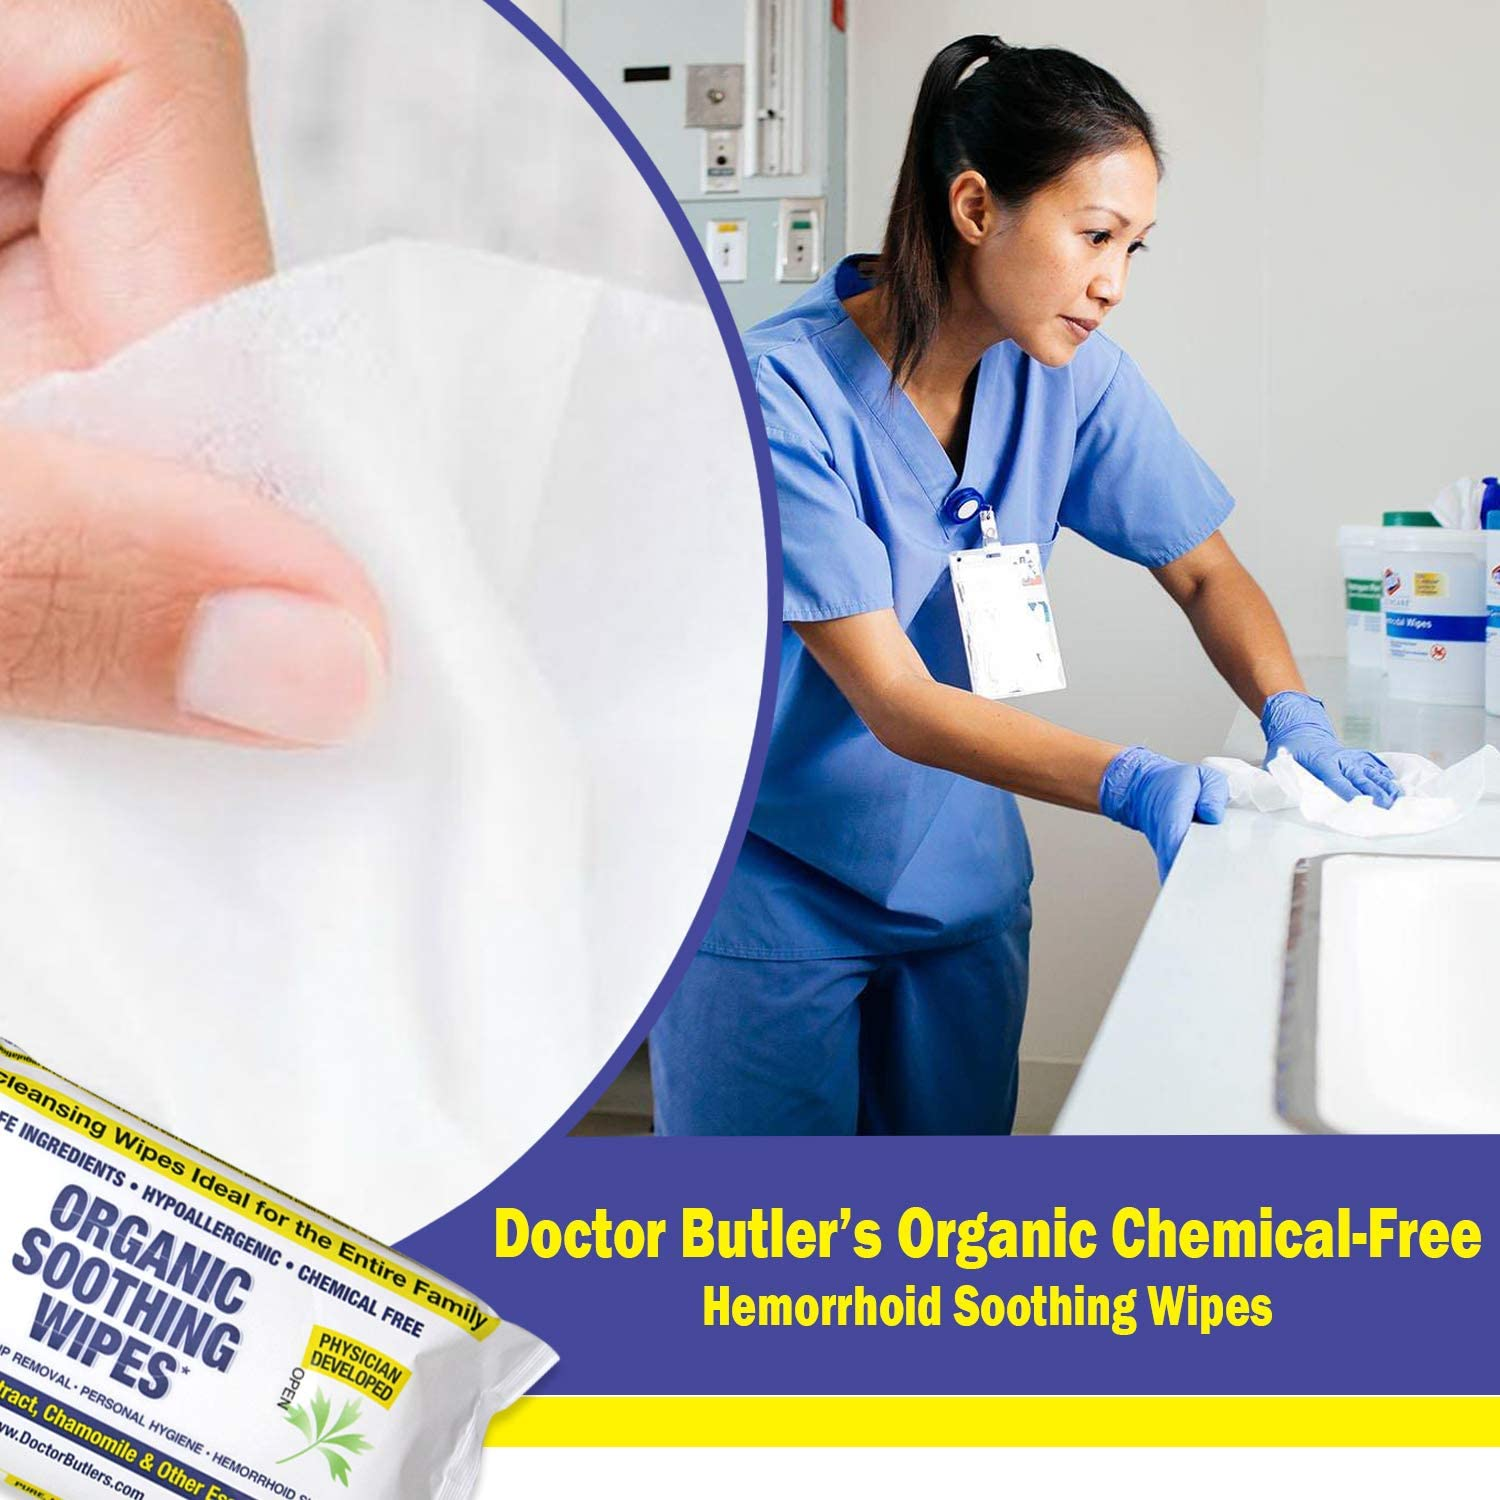 Dr Butler's Organic Soothing Wipes – All Natural, Hypo-Allergenic Hemorrhoid Treatment Wipes to Help Moisturize and Soothe Dry Sensitive Skin with Chamomile and Essential Oils* (1 Pack – 60 Count): Health & Personal Care